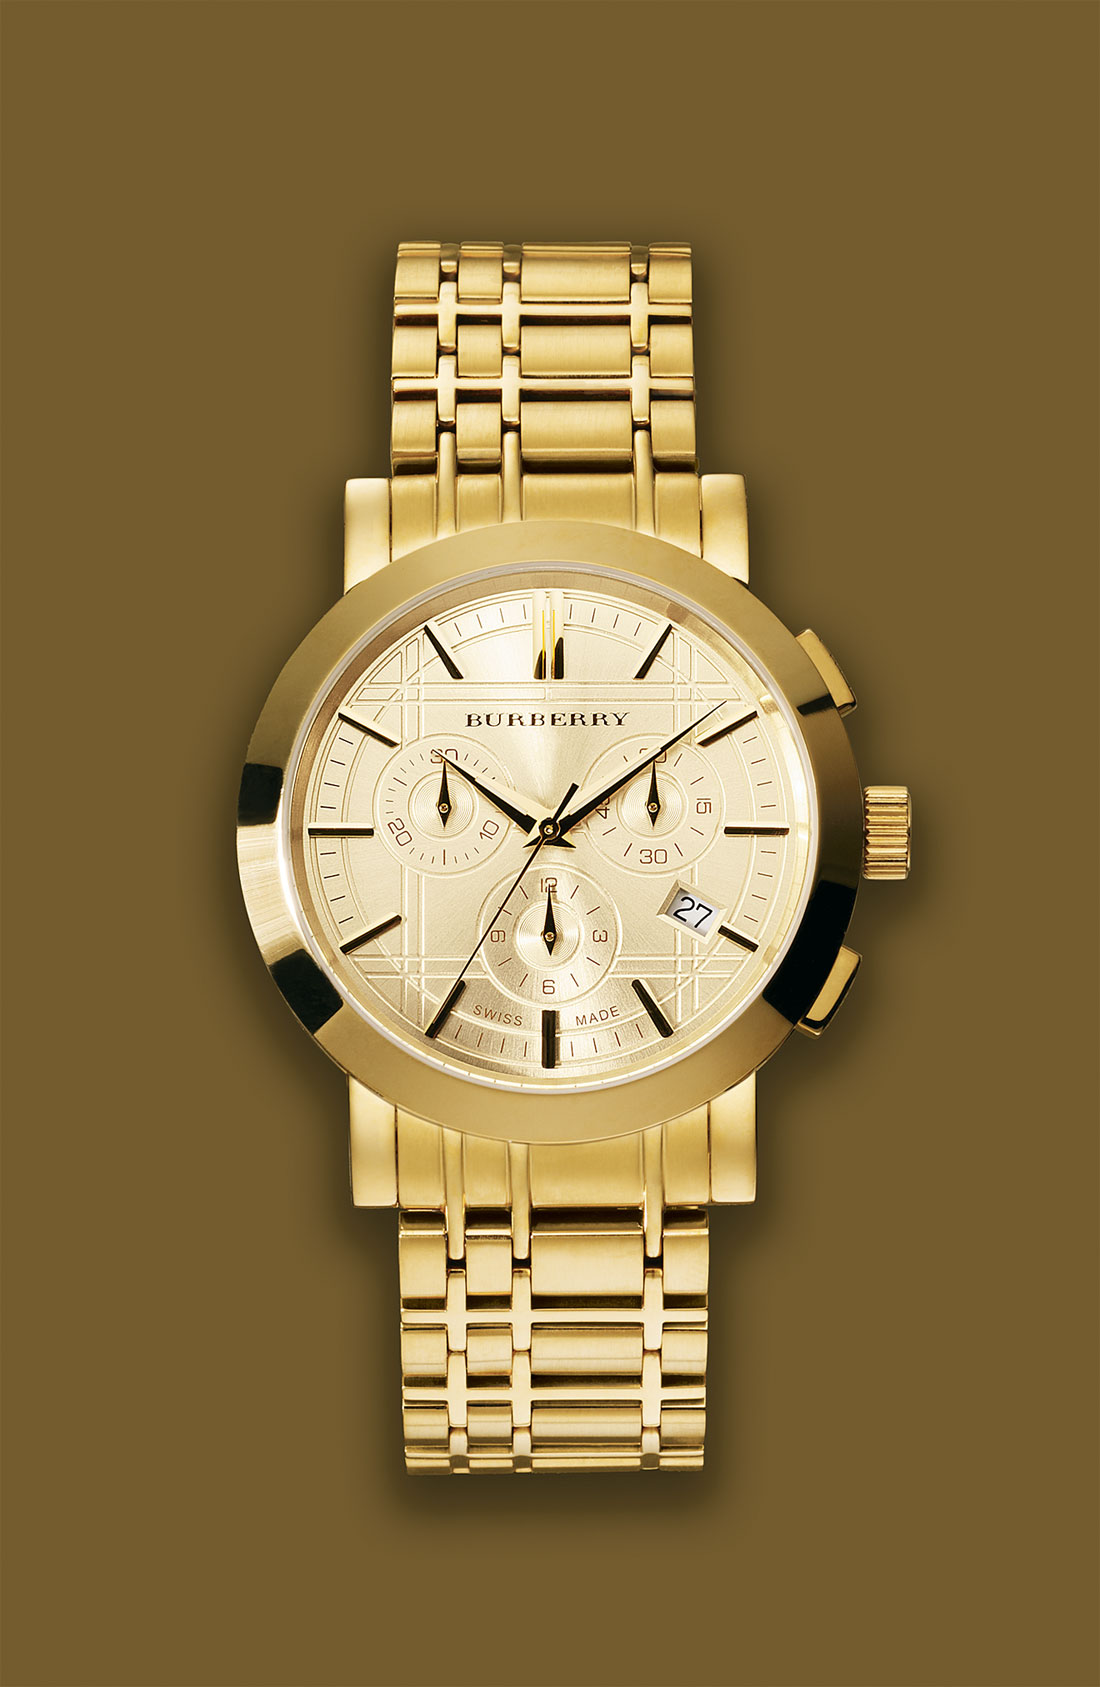 Burberry watches for men